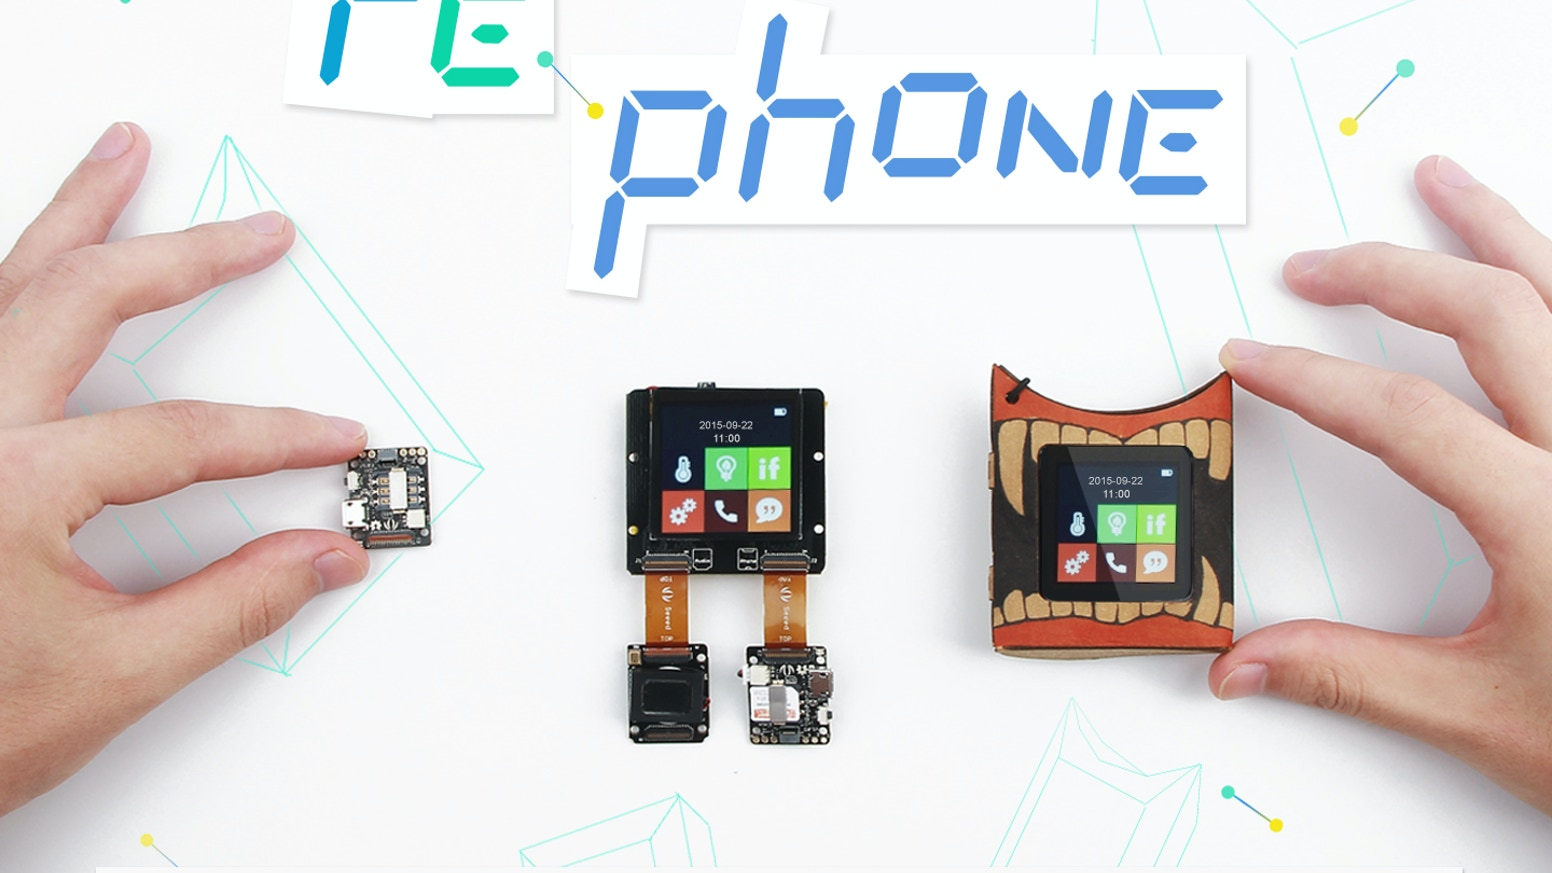 Rephone Kit Worlds First Open Source And Modular Phone By Seeed Usb Powered Pic Programmer Circuit Schematic Images Femalecelebrity Create A Yourself In Minutes Hack New Way To Communicate With Things